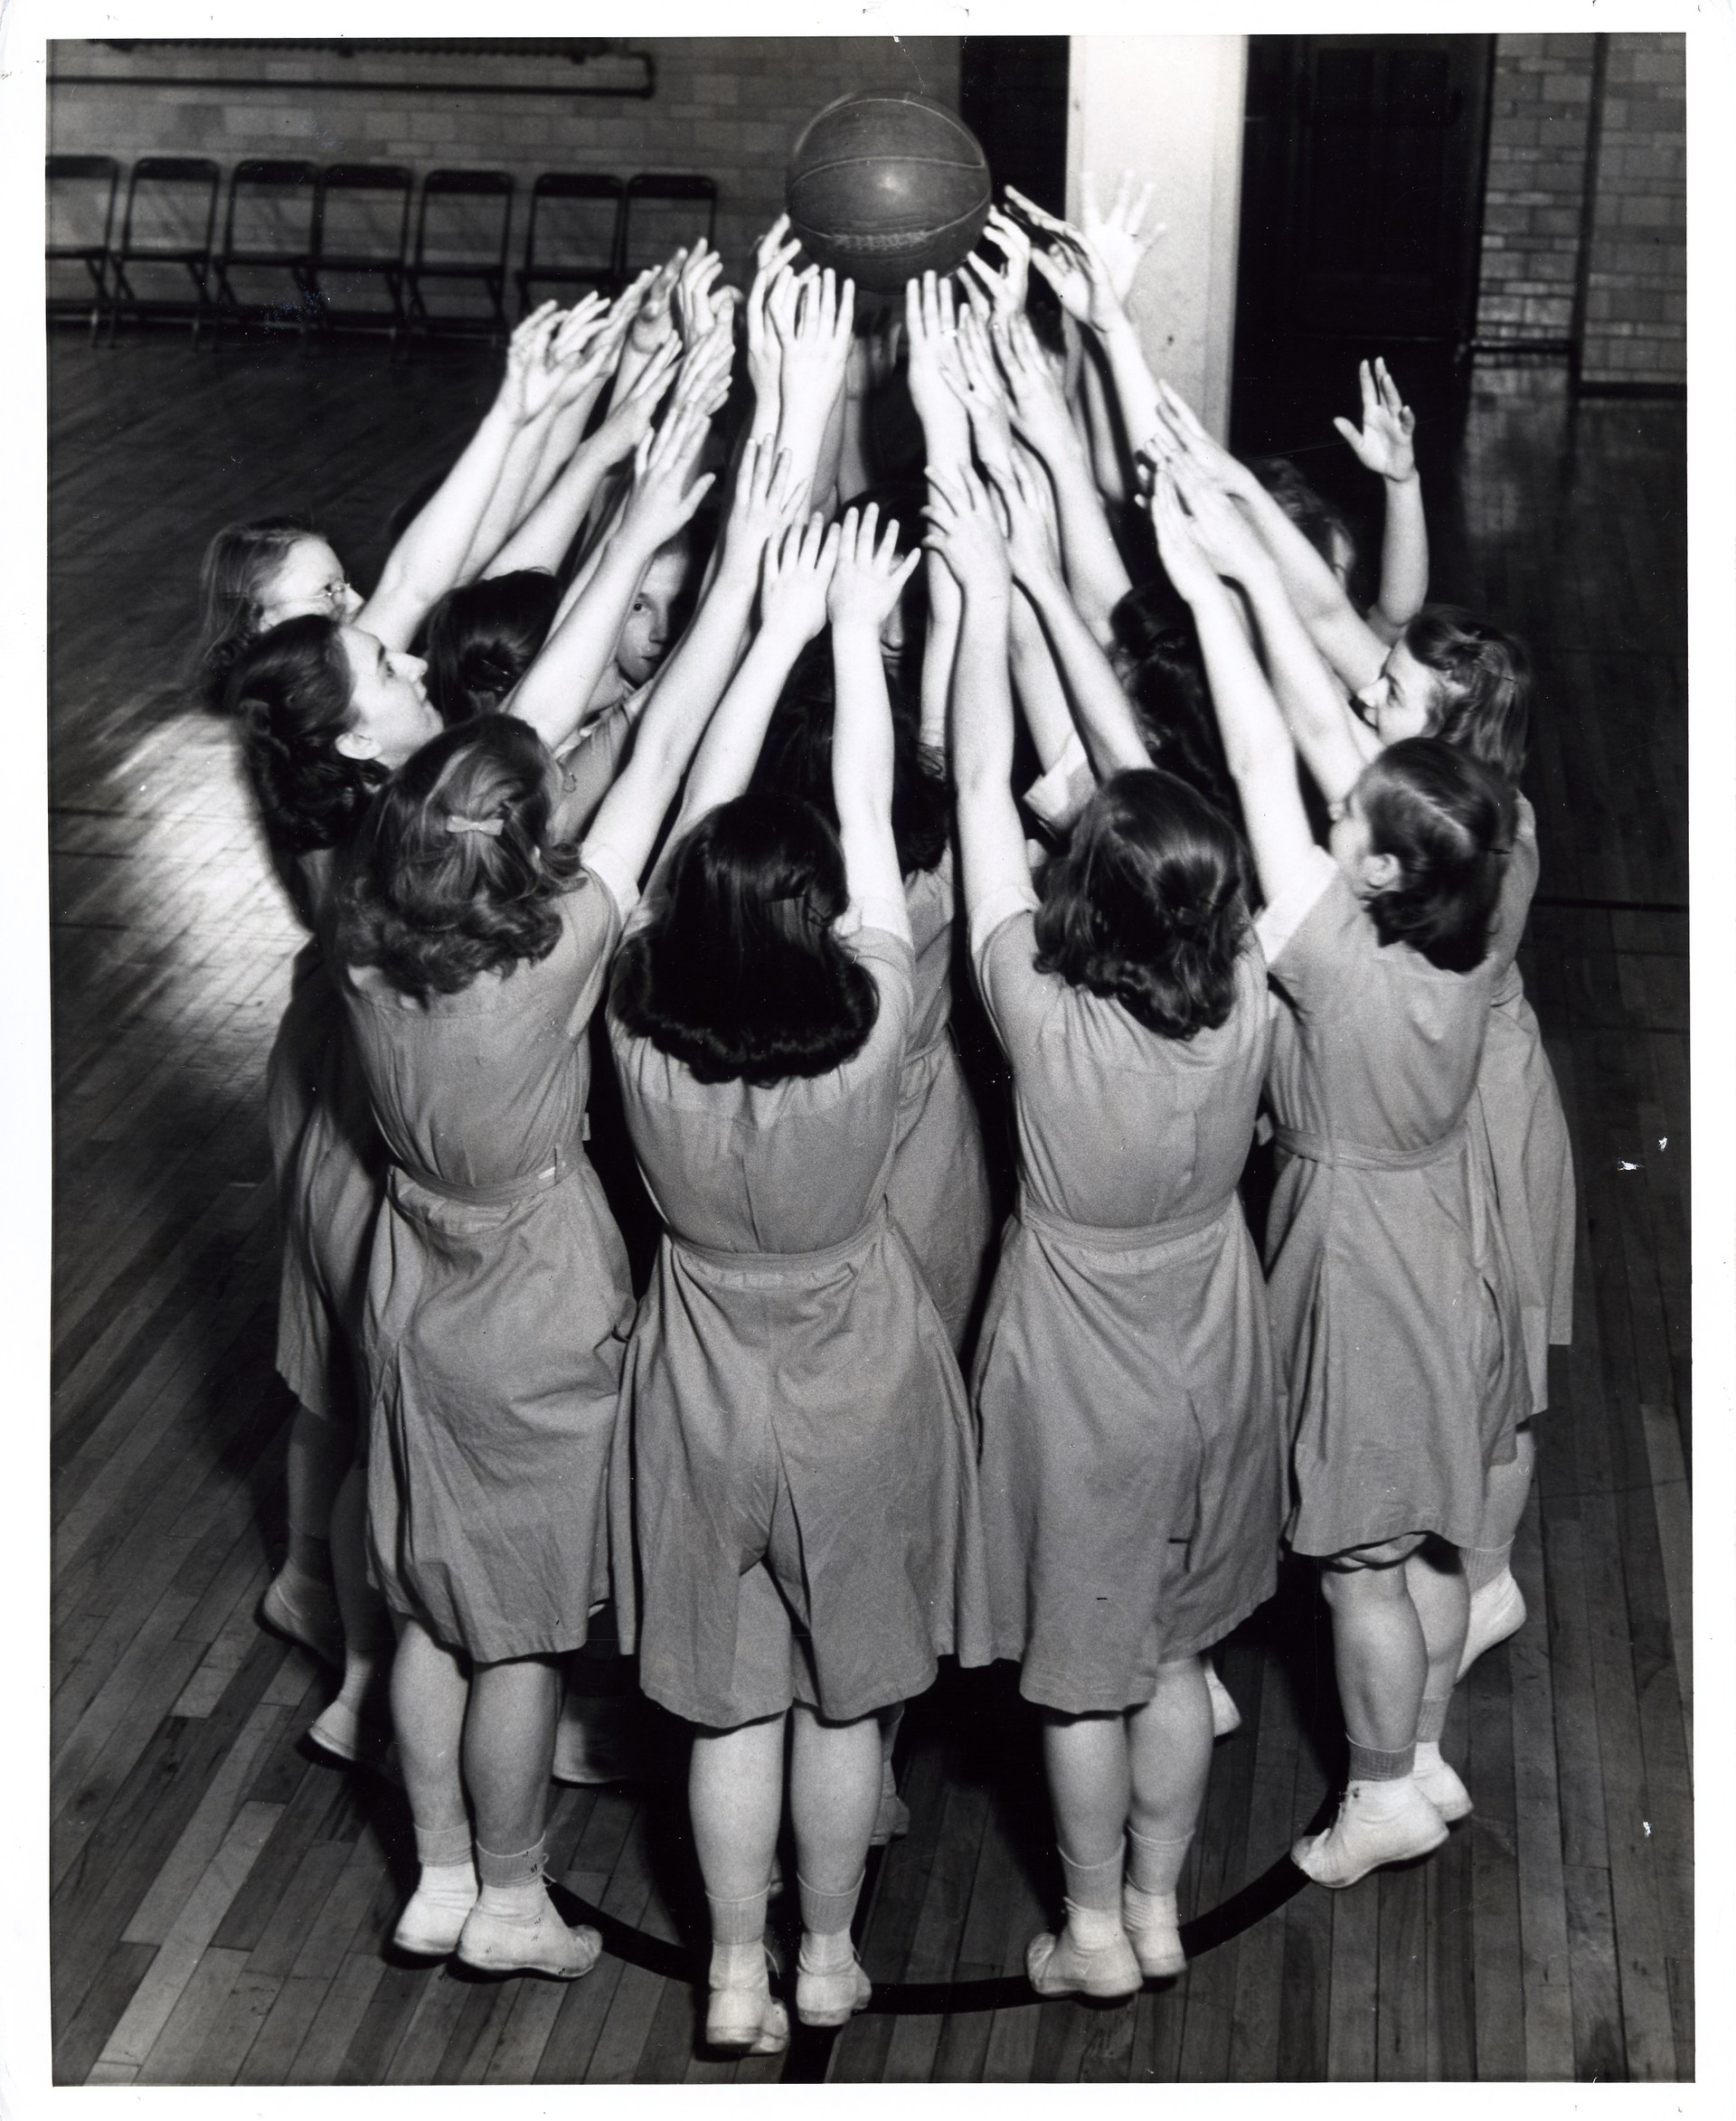 A group of young women pose with arms up in the air around a basketball